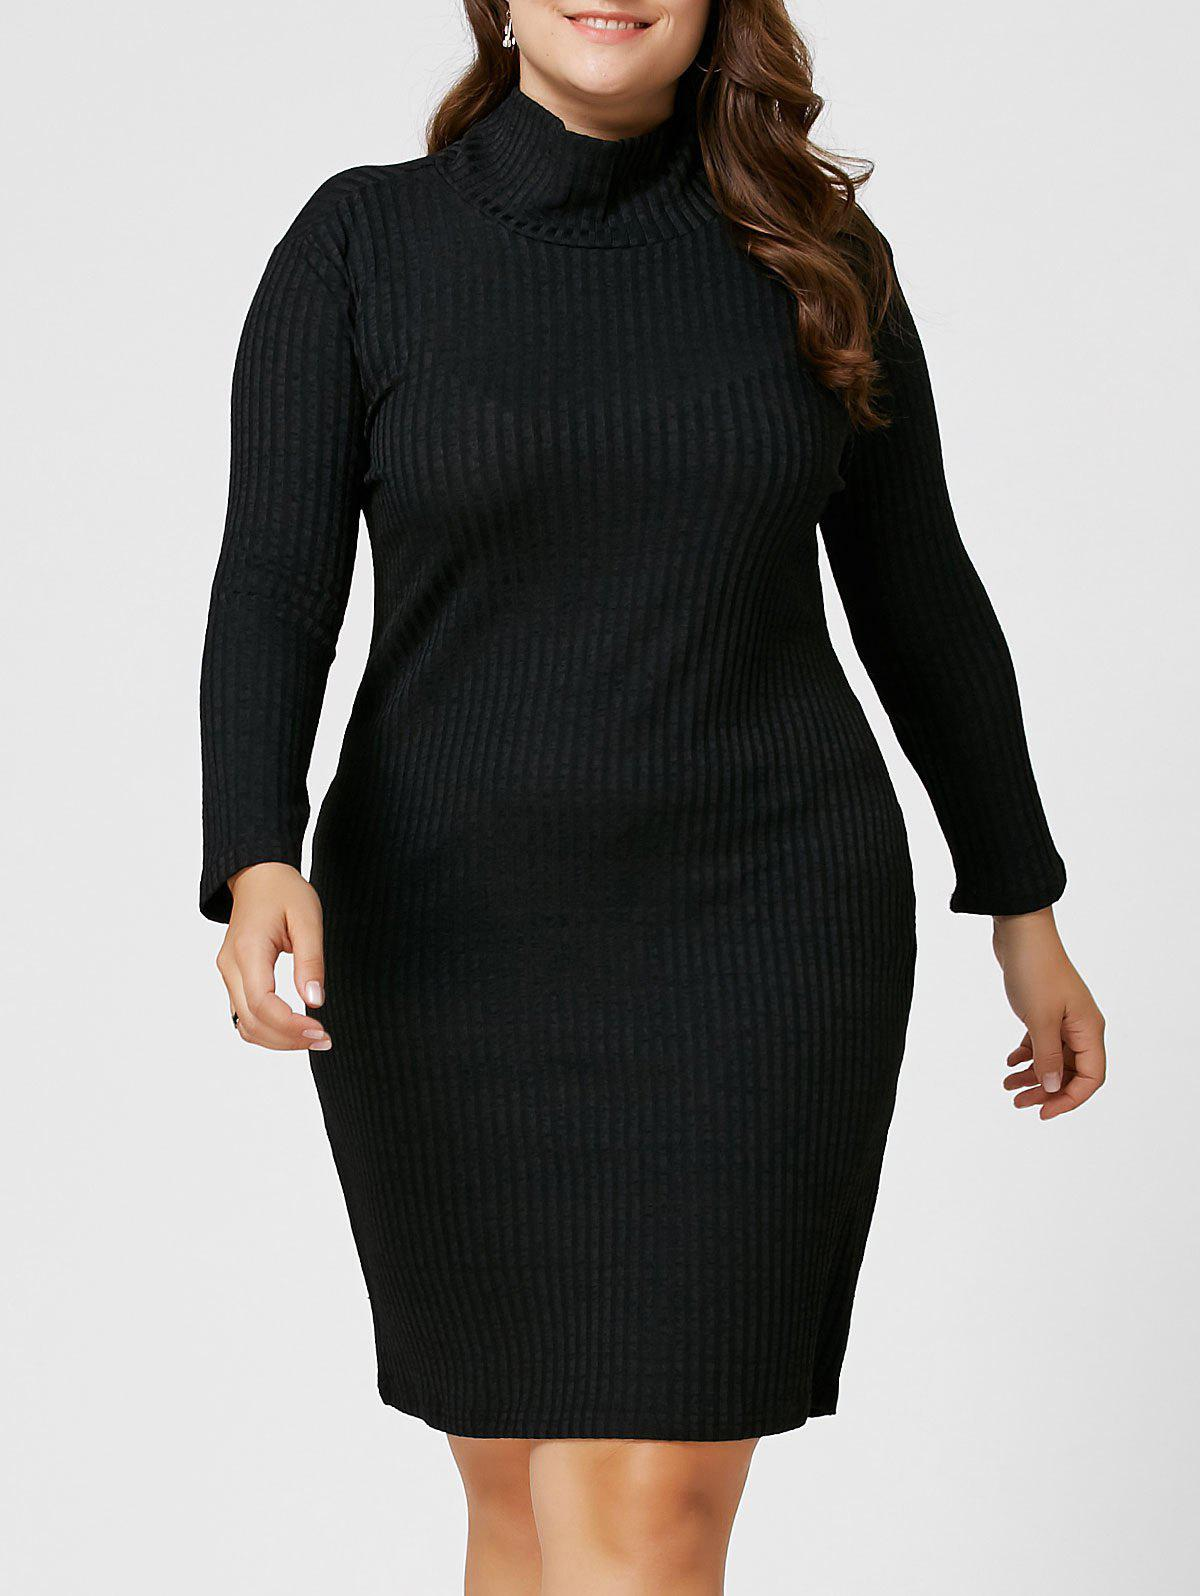 61% OFF] Plus Size Sheath Turtleneck Ribbed Sweater Dress | Rosegal